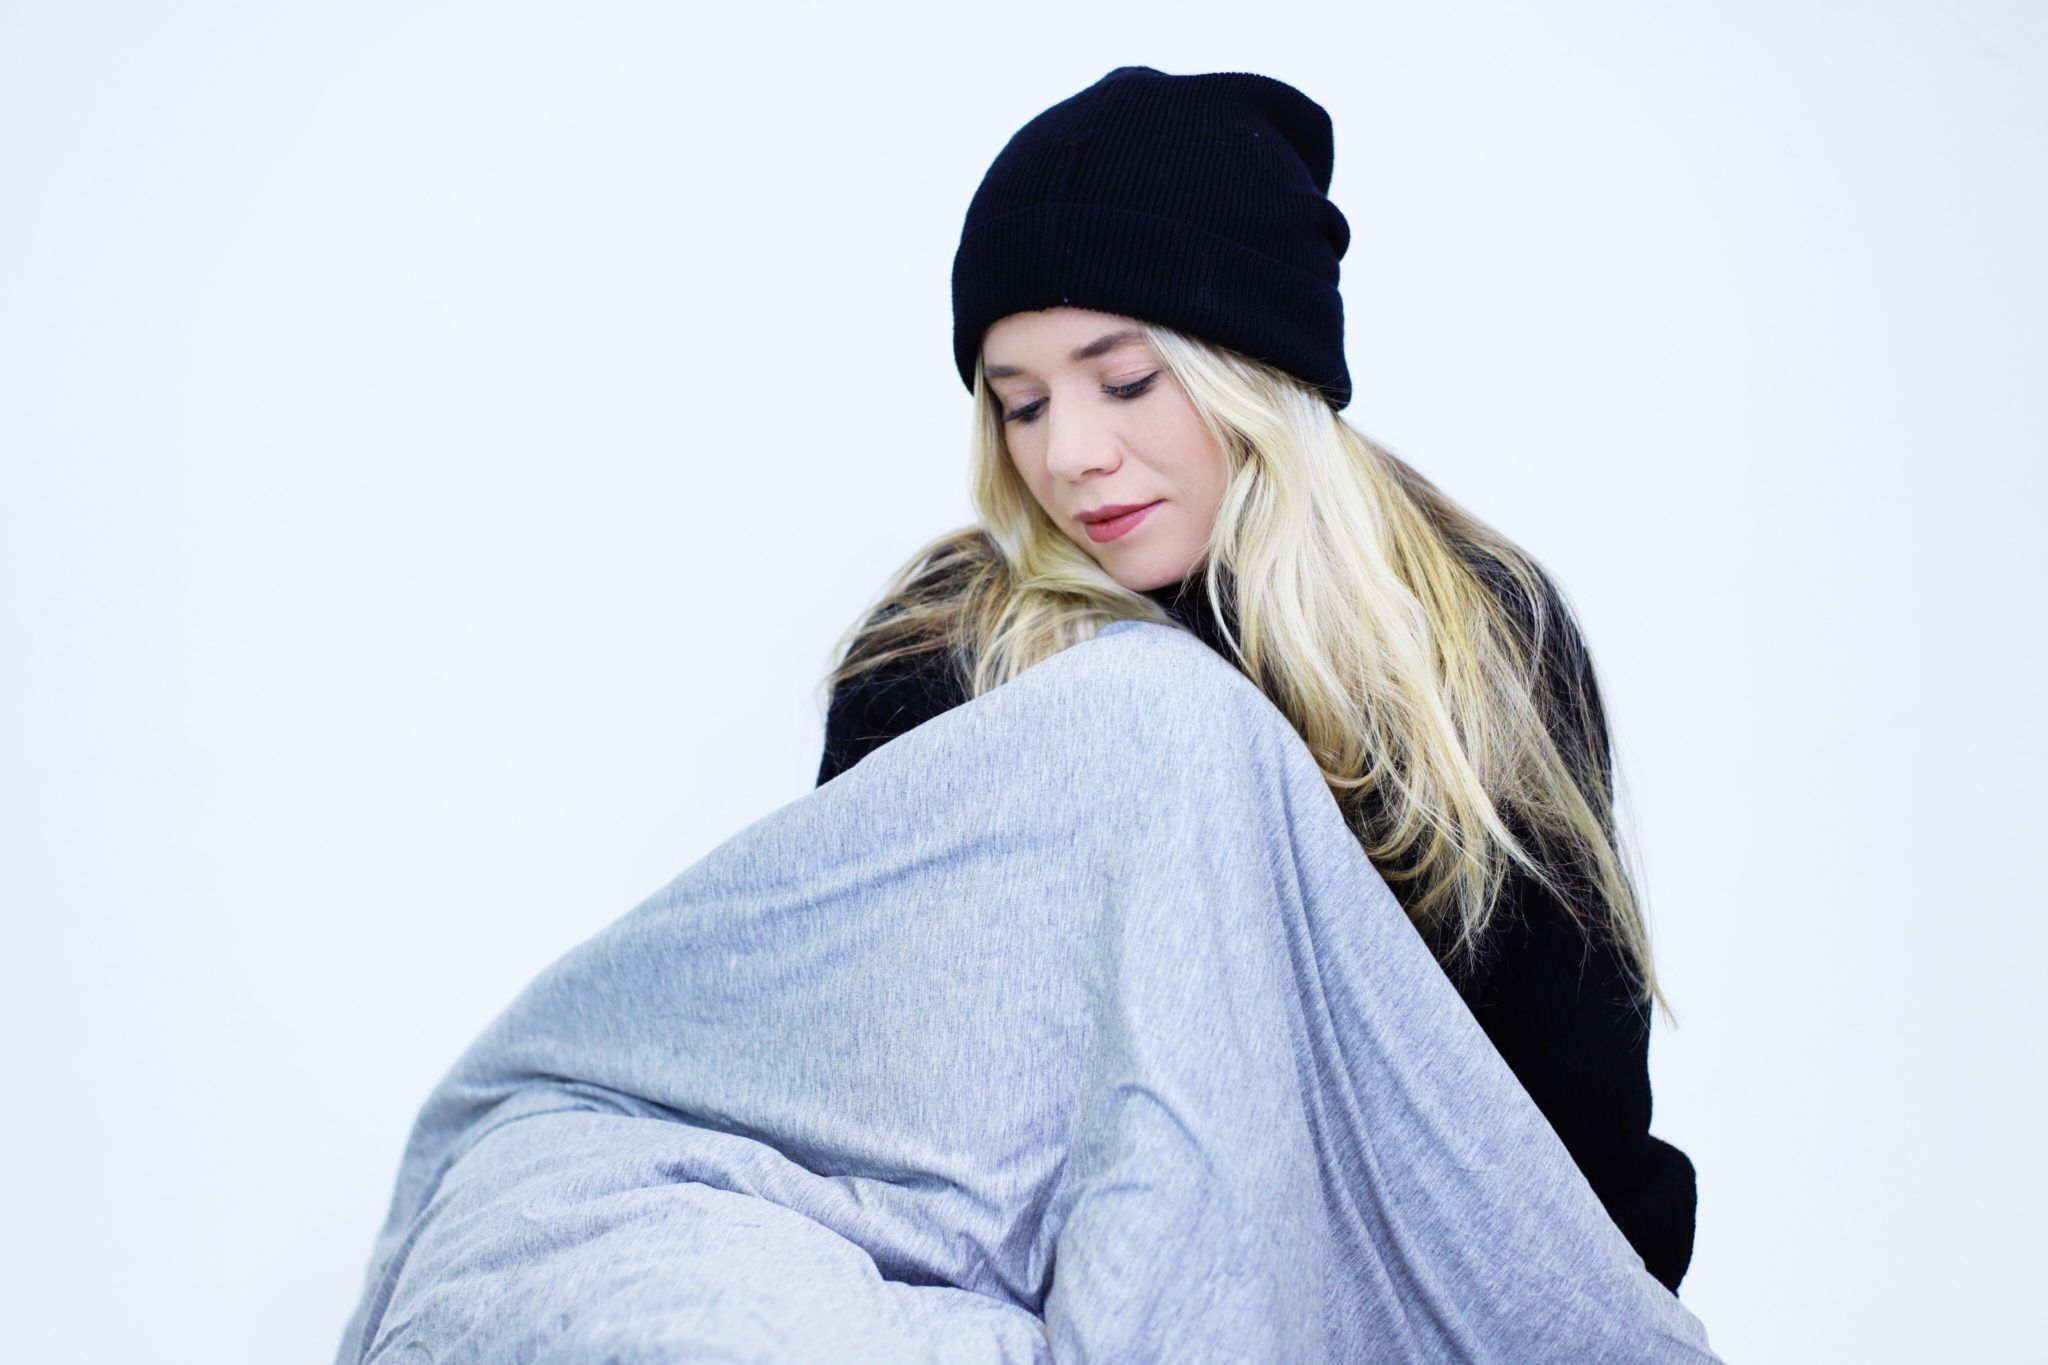 Hush Iced Weighted Blanket The Coolest Way To Fall Asleep Fast